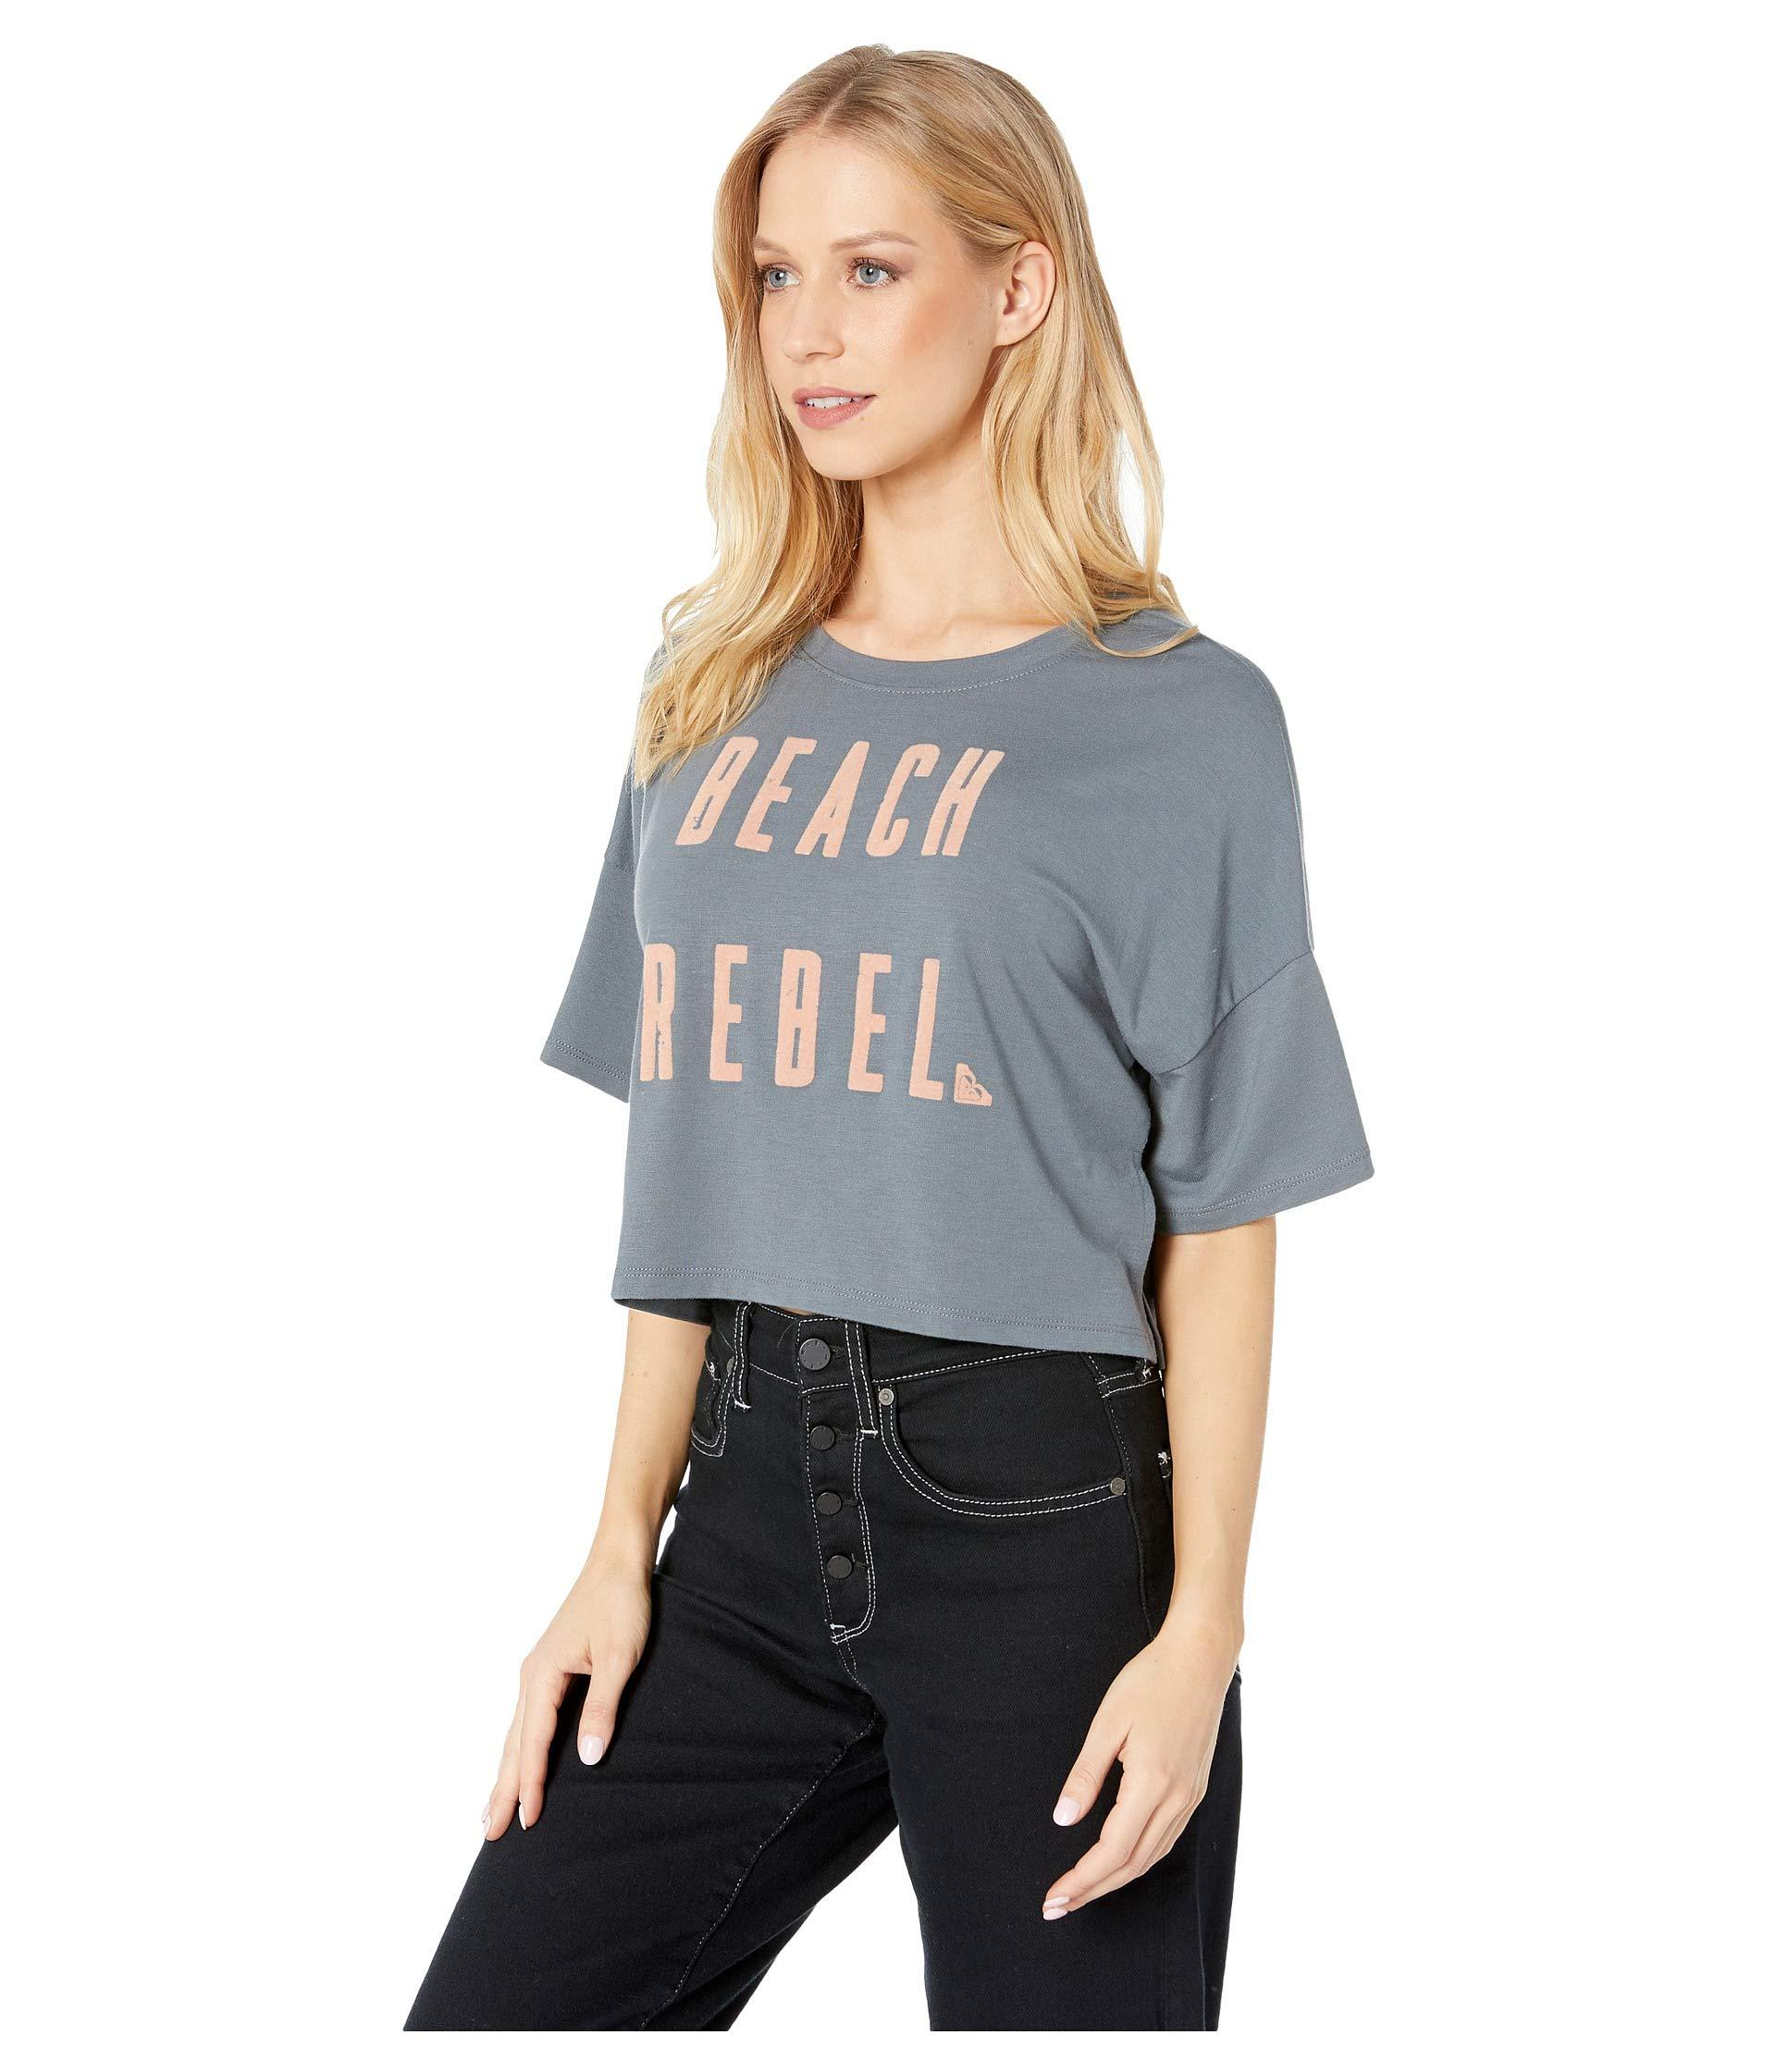 a5c240d2d Lyst - Roxy Beach Rebel Cropped T-shirt (turbulence) Women's T Shirt